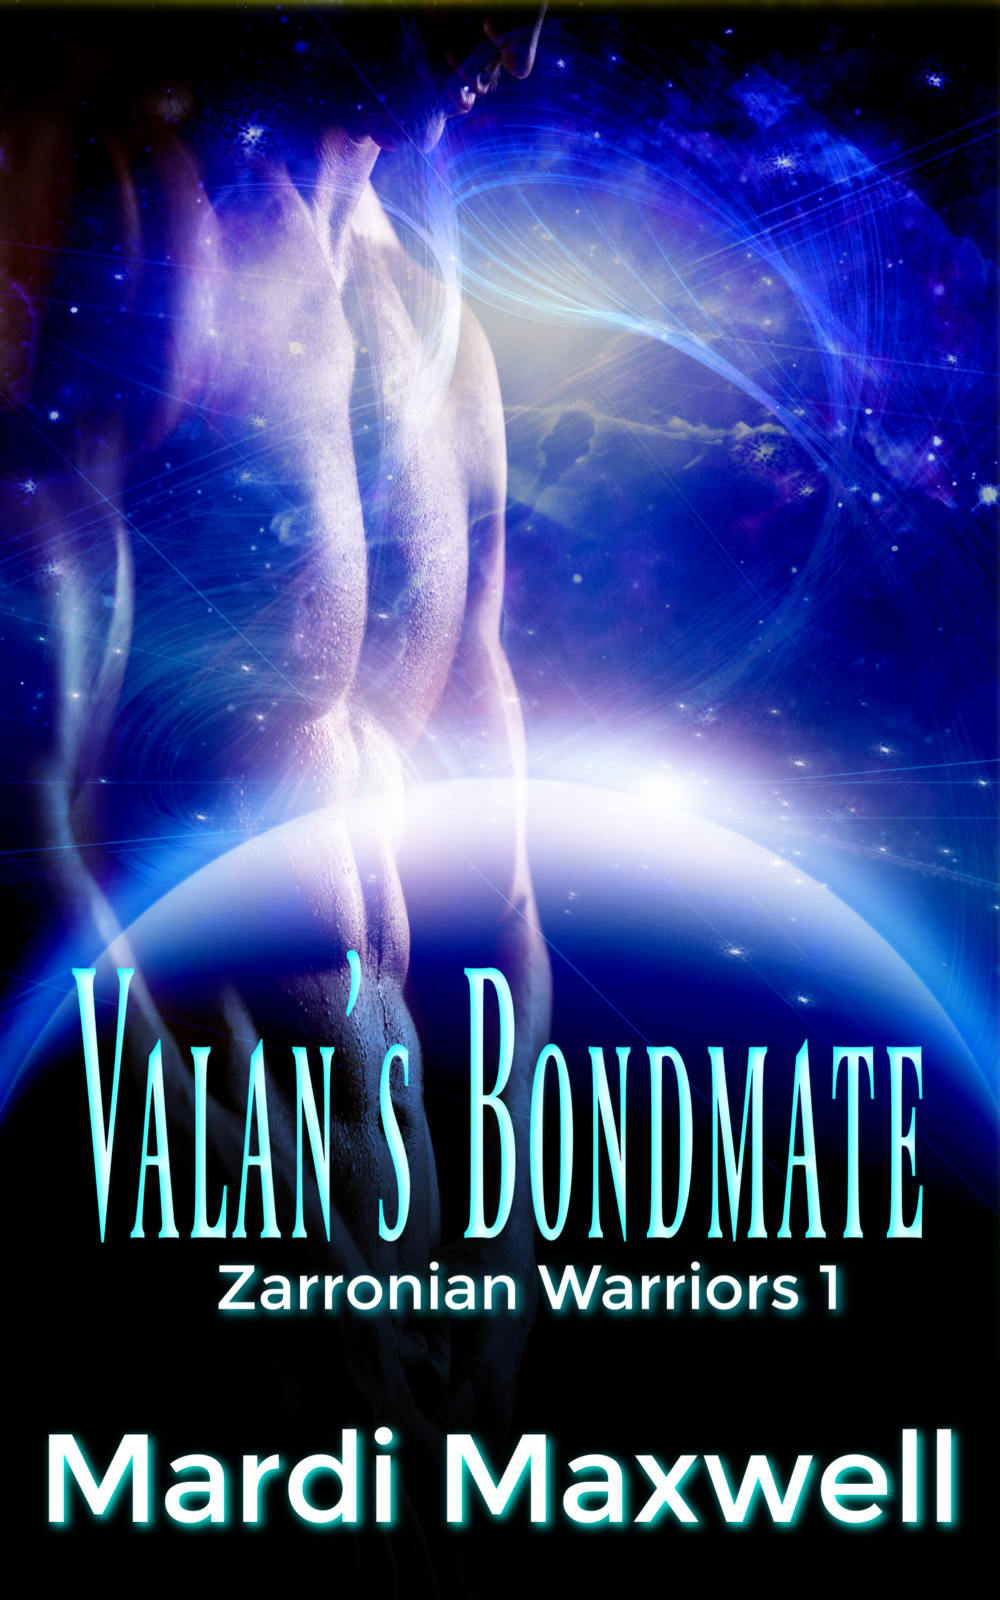 Valan's Bondmate - She is his enemy.He is her captor.She wants his love.He wants revenge.Taken from her bed in the middle of the night Lia ad-San wakes on a starship bonded to a Zarronian warrior and light years away from her home. At first she's relieved to have escaped the fate her sire had planned for her and she tries to adjust to her new life, but Valan's anger and pride defeat her at every turn. His mating fever will keep them together but when he does the unforgivable can love make her want him again?Note: The reader will enjoy this series more if they read the books in the order they were written.